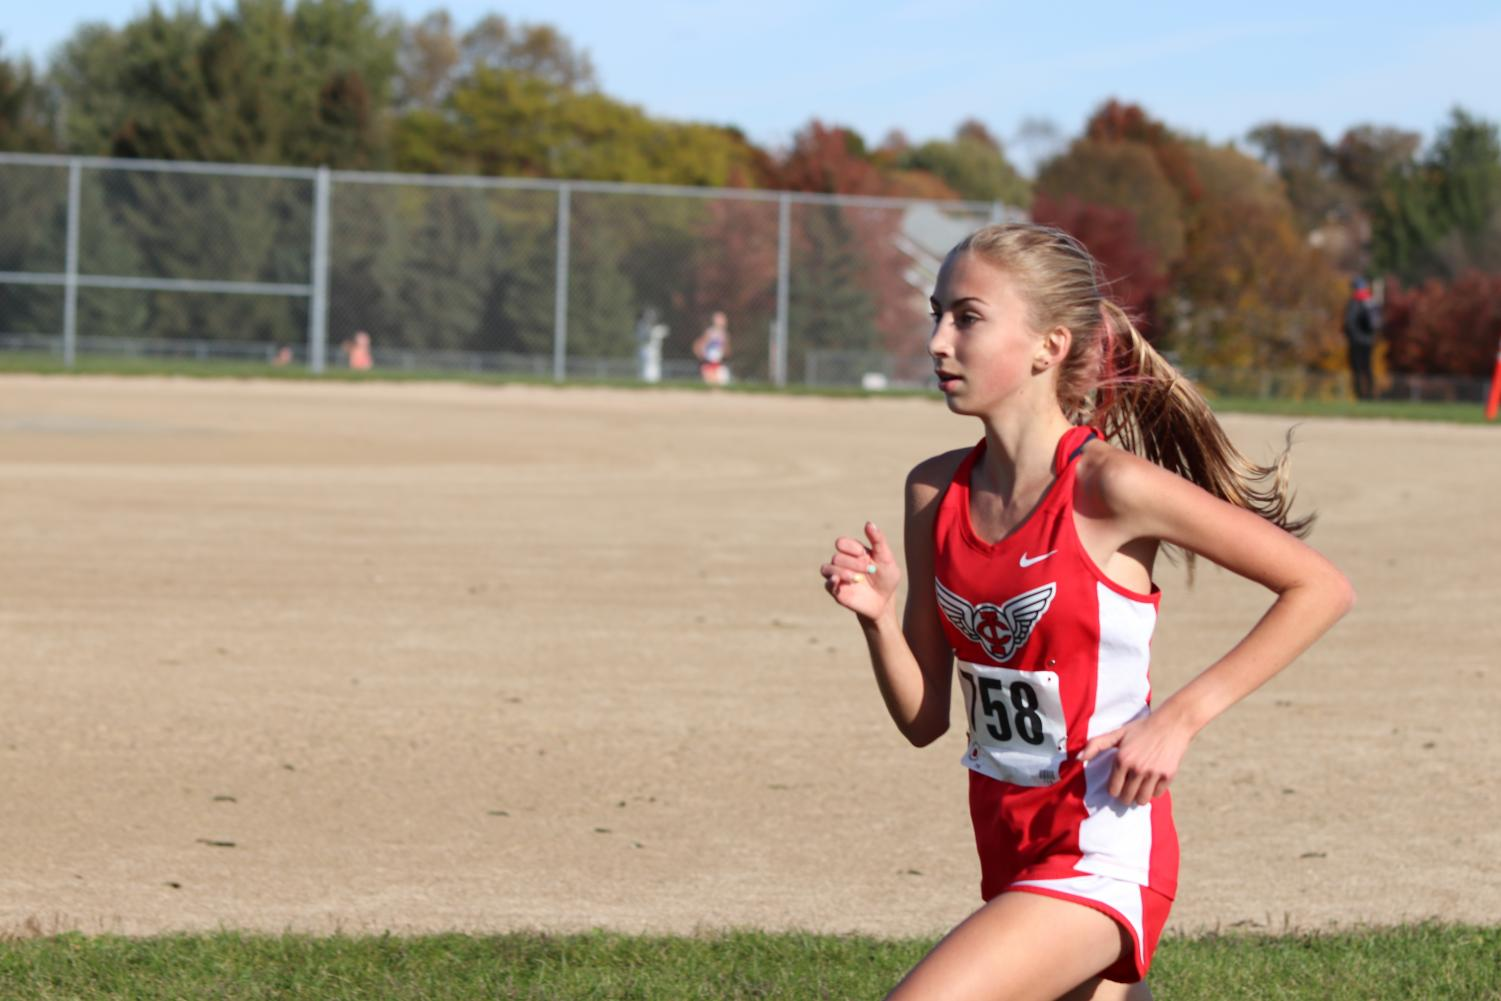 Rowan Boulter placed third overall with a time of 19:07